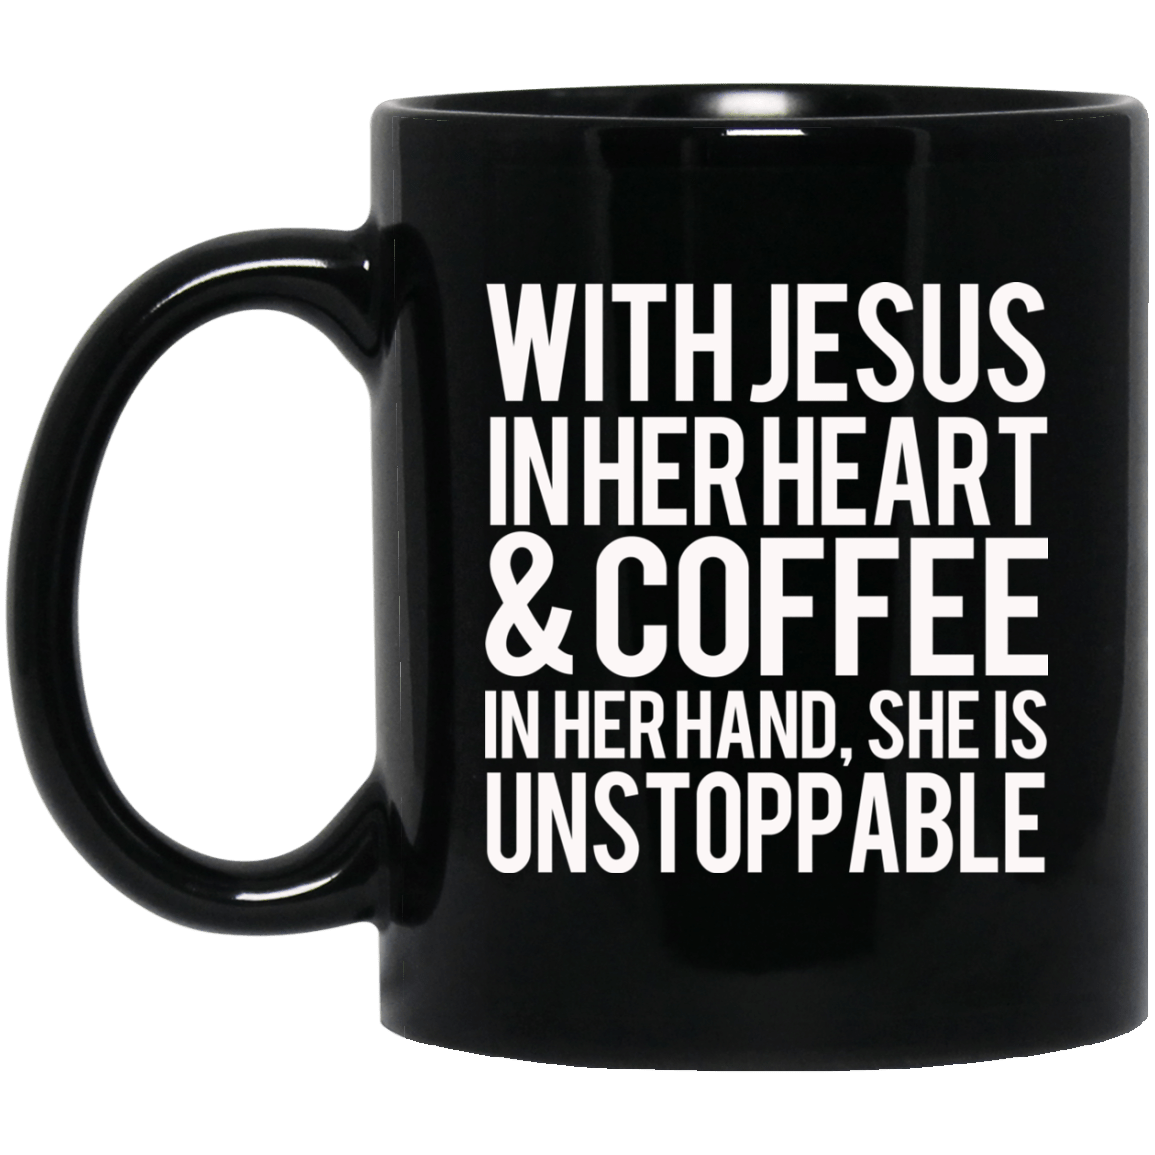 with jesus in her heart and coffee in her hand she is unstoppable